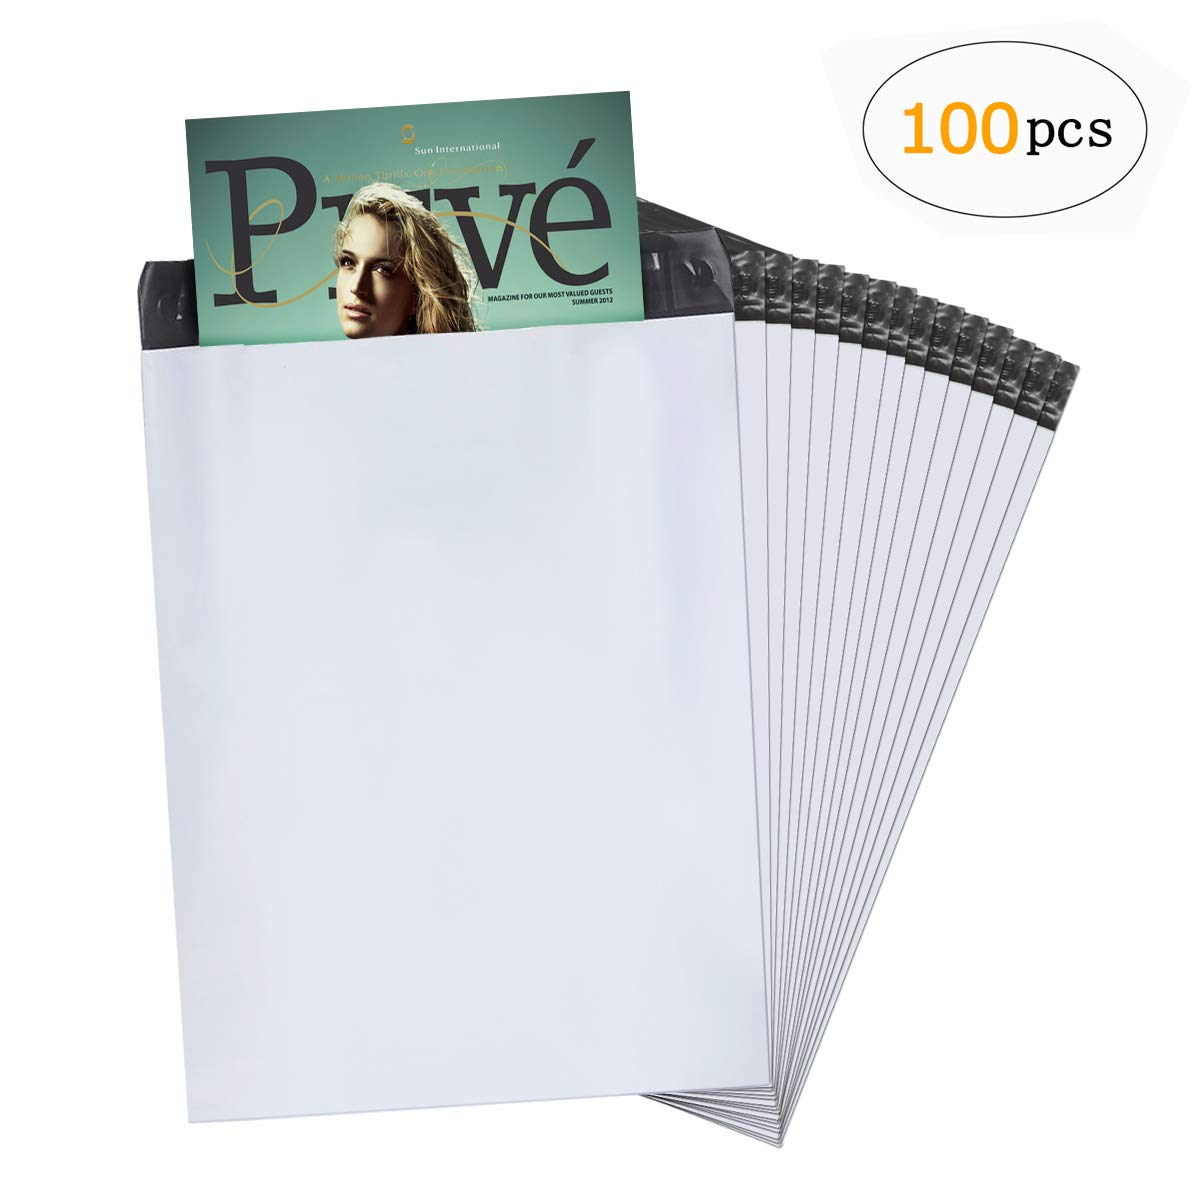 Plastic Polythene Mailing Postal Shipping Bags Self Seal Packing Packaging Postage Mail Sacks Envelopes Mailers Pack of 100 Pcs(17.7x12.59inch)